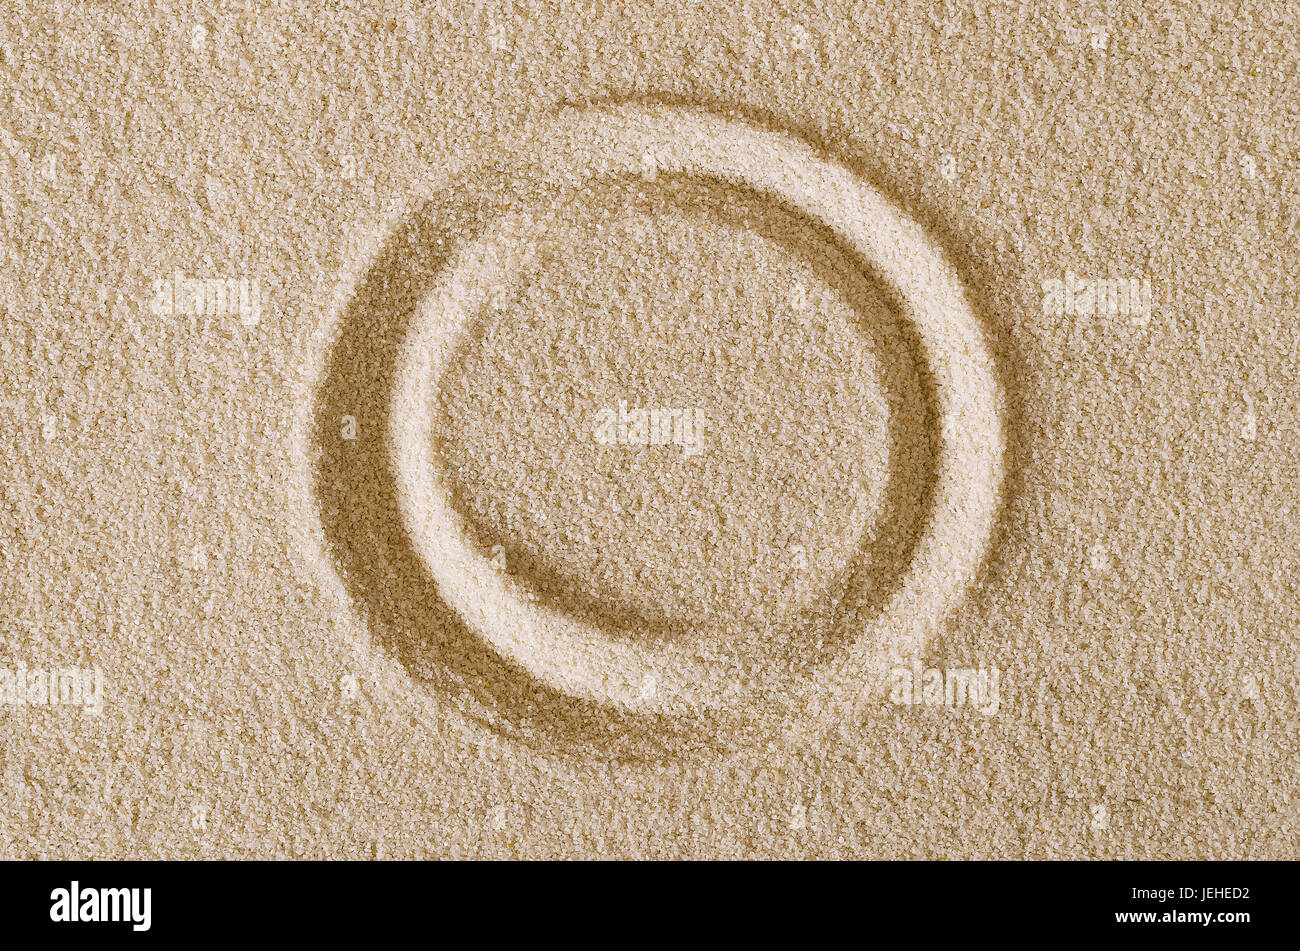 Circle shape imprint in sand surface. A closed curve, a ring or a disc in a rectangular flat sand area. Pictogram - Stock Image